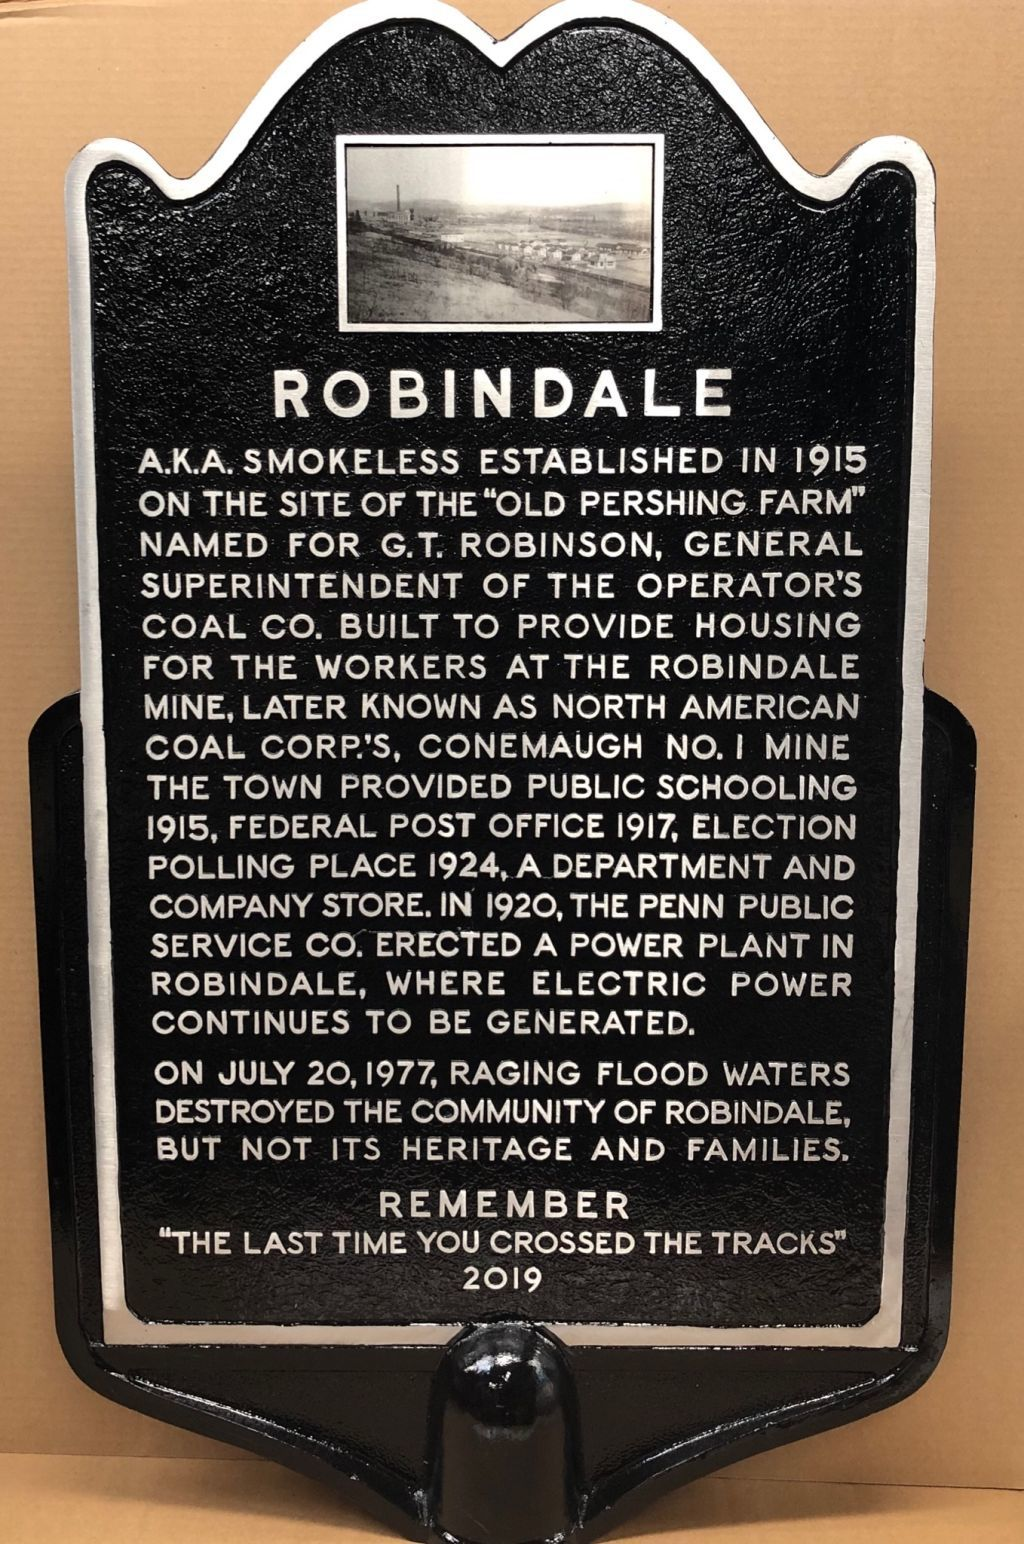 Robindale plaque